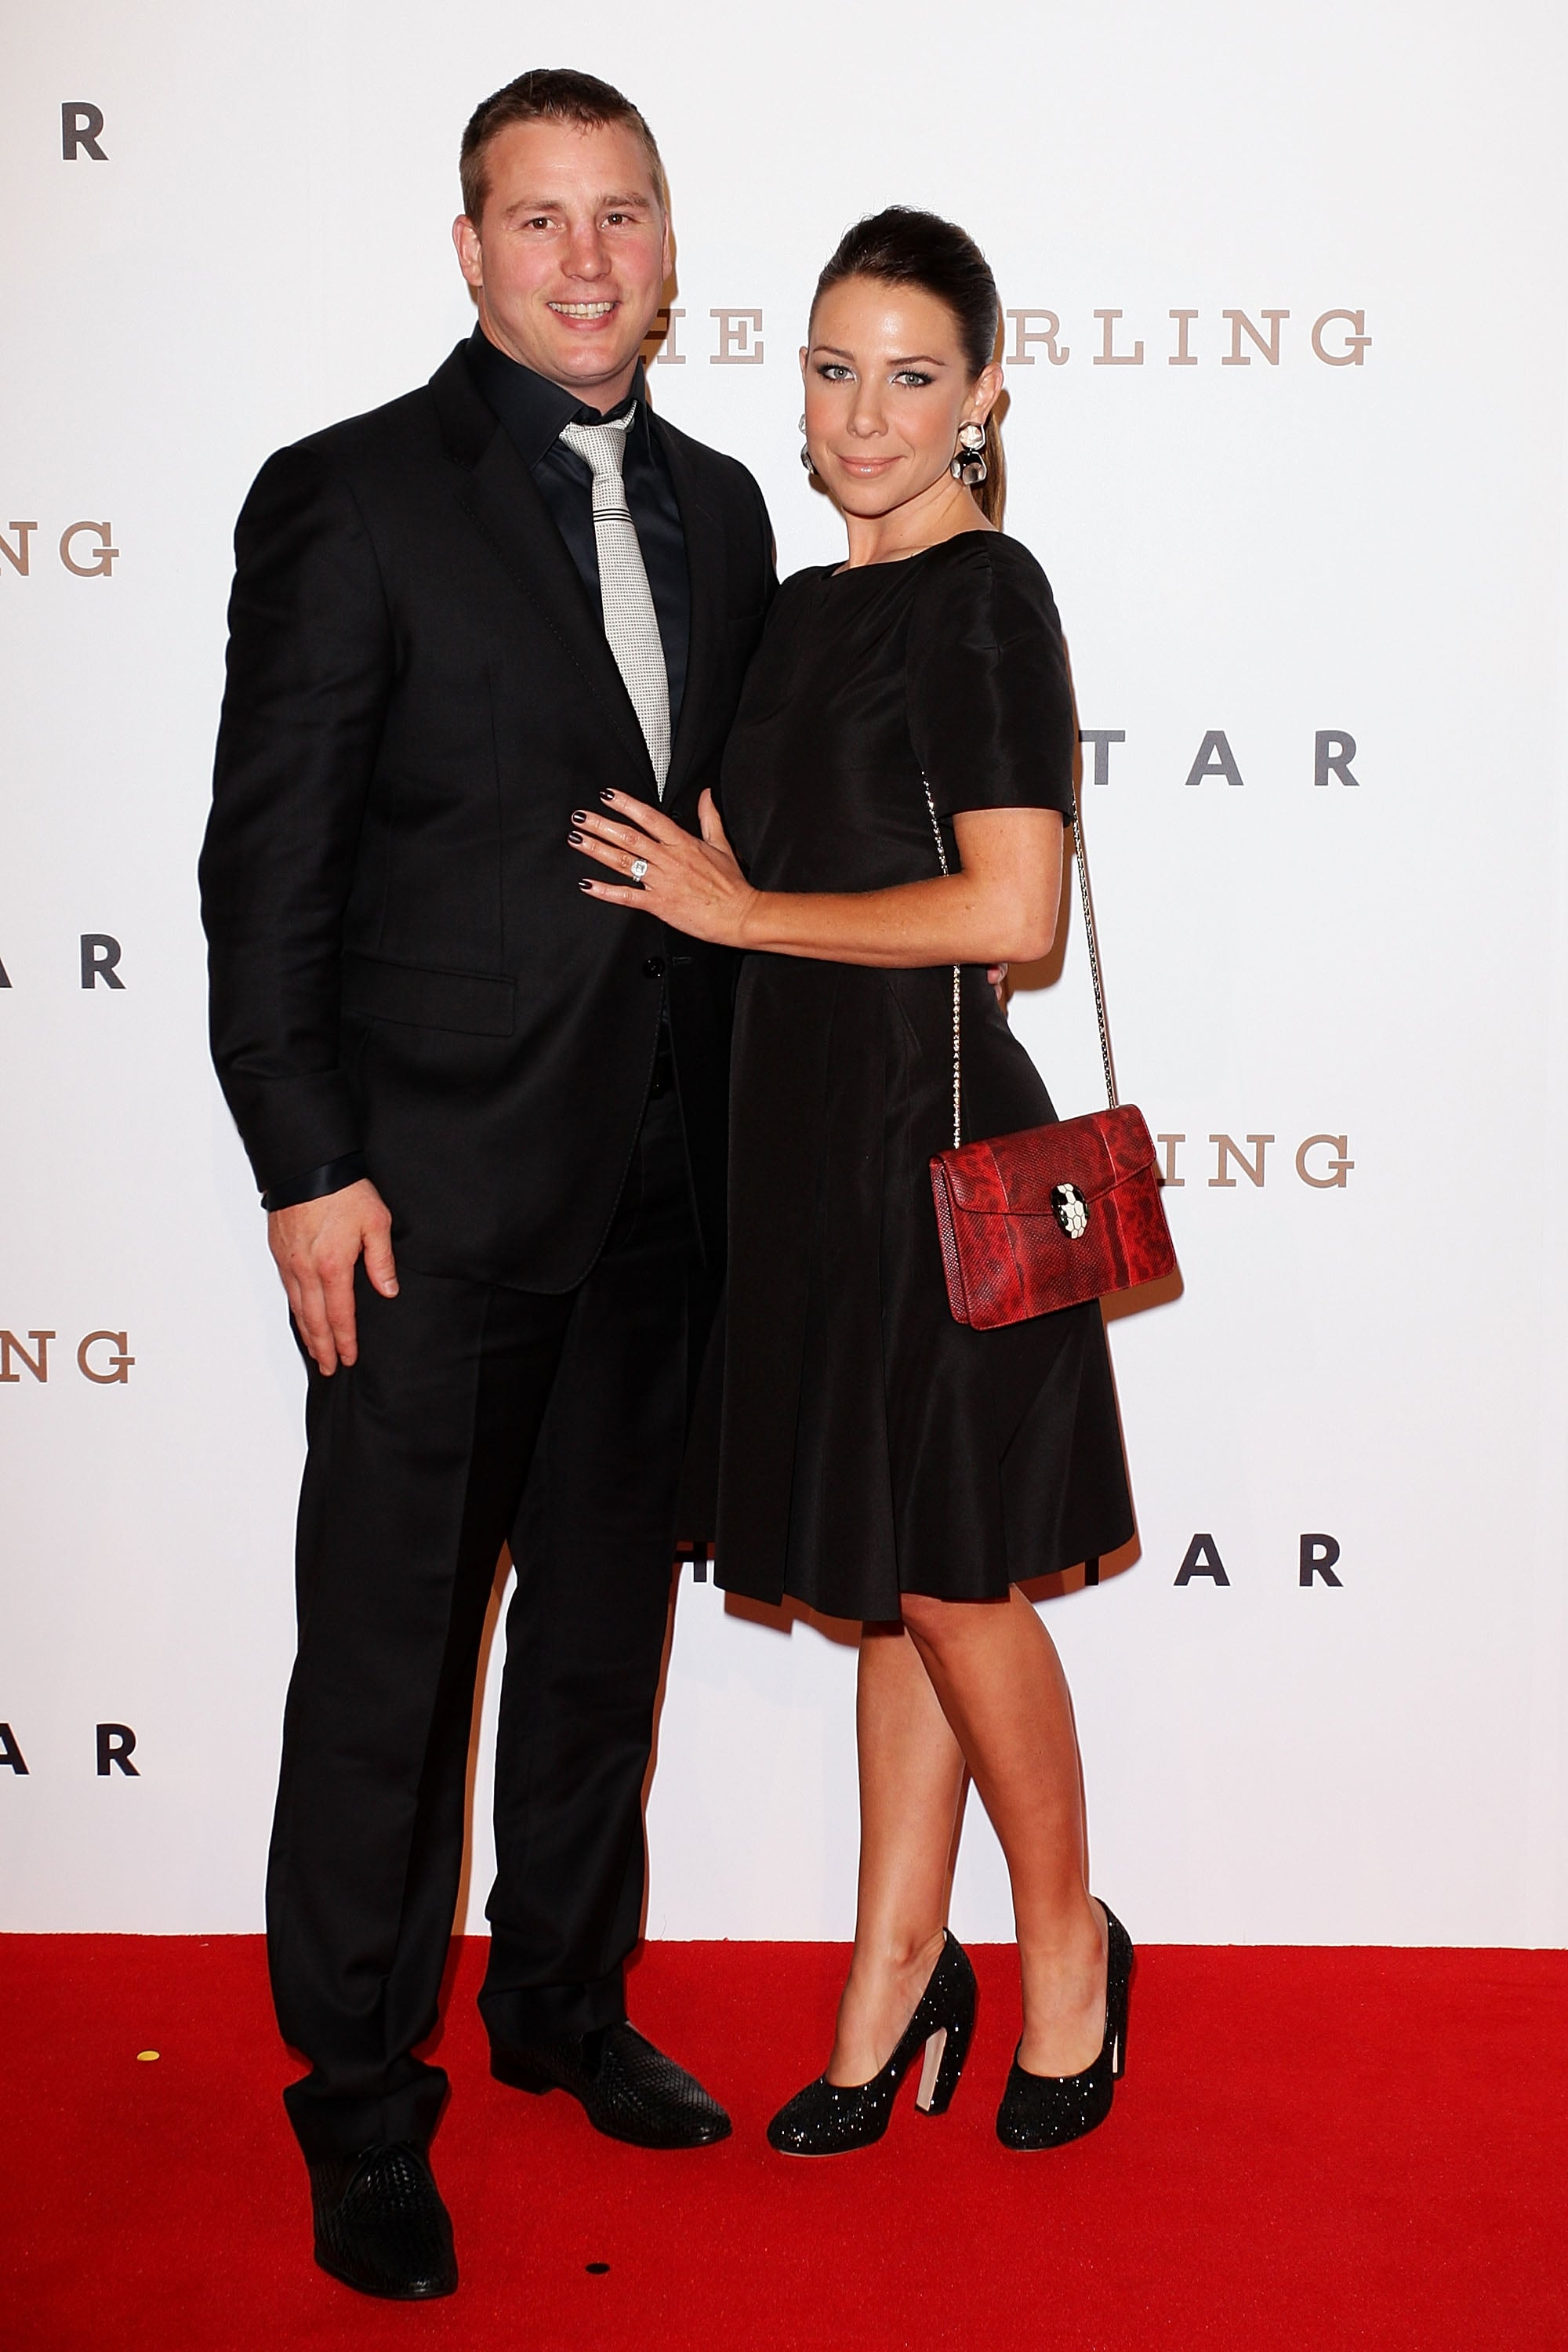 Stuart Webb and Kate Ritchie